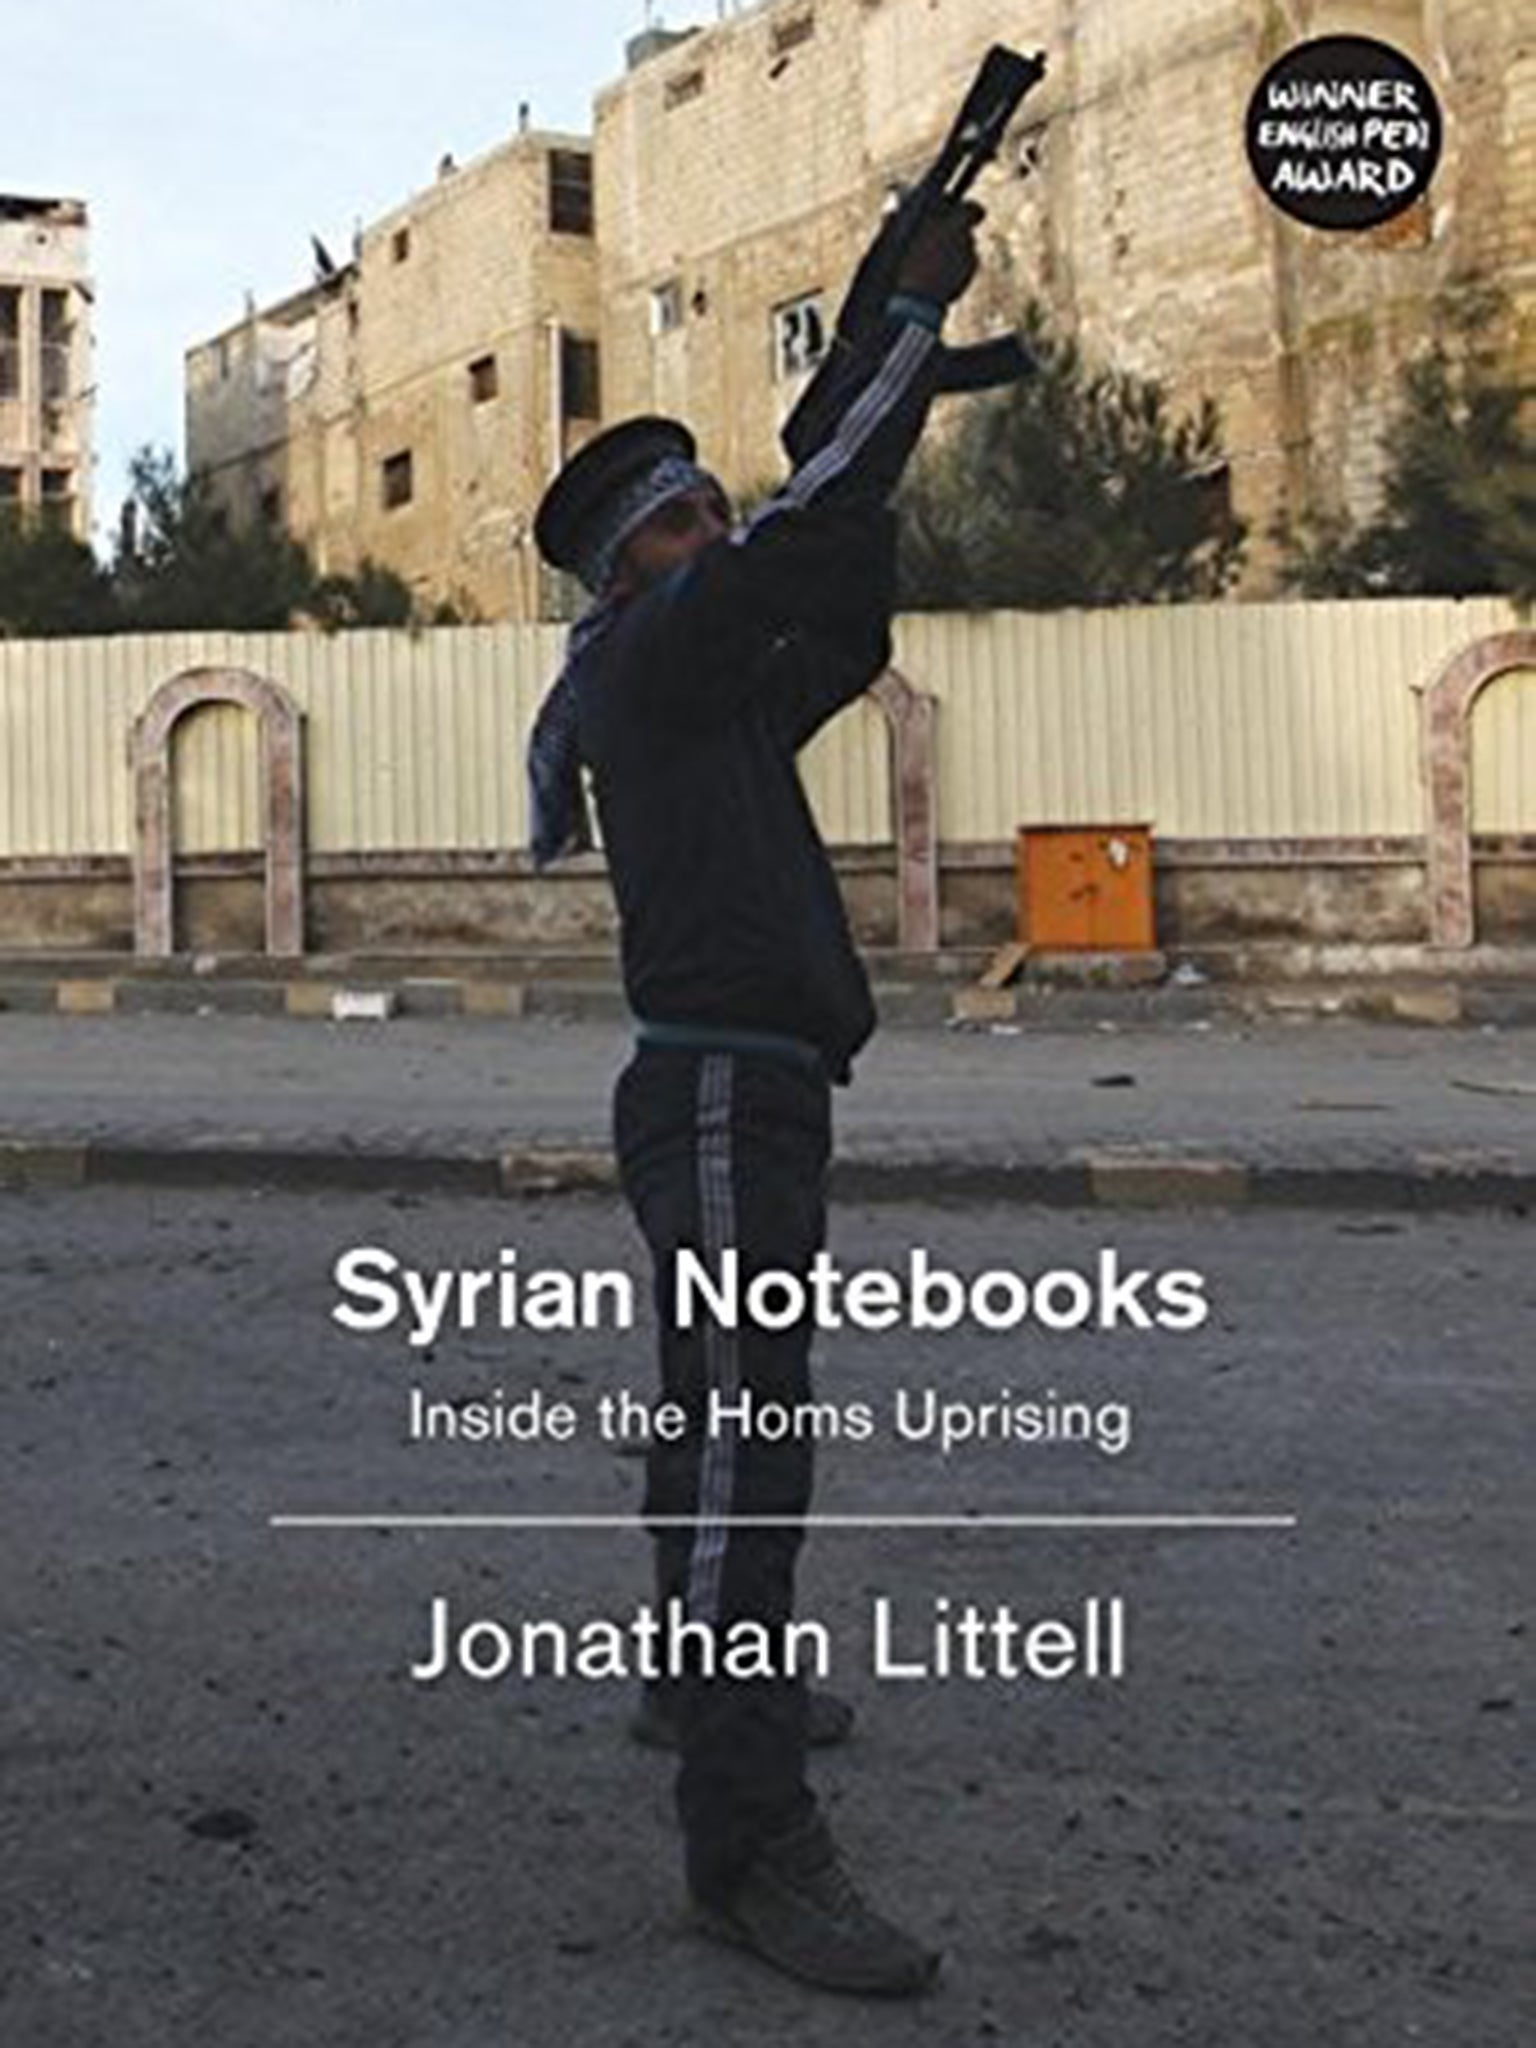 f90d1e4a85 Syrian Notebooks: Inside the Homs Uprising by Jonathan Littell ...